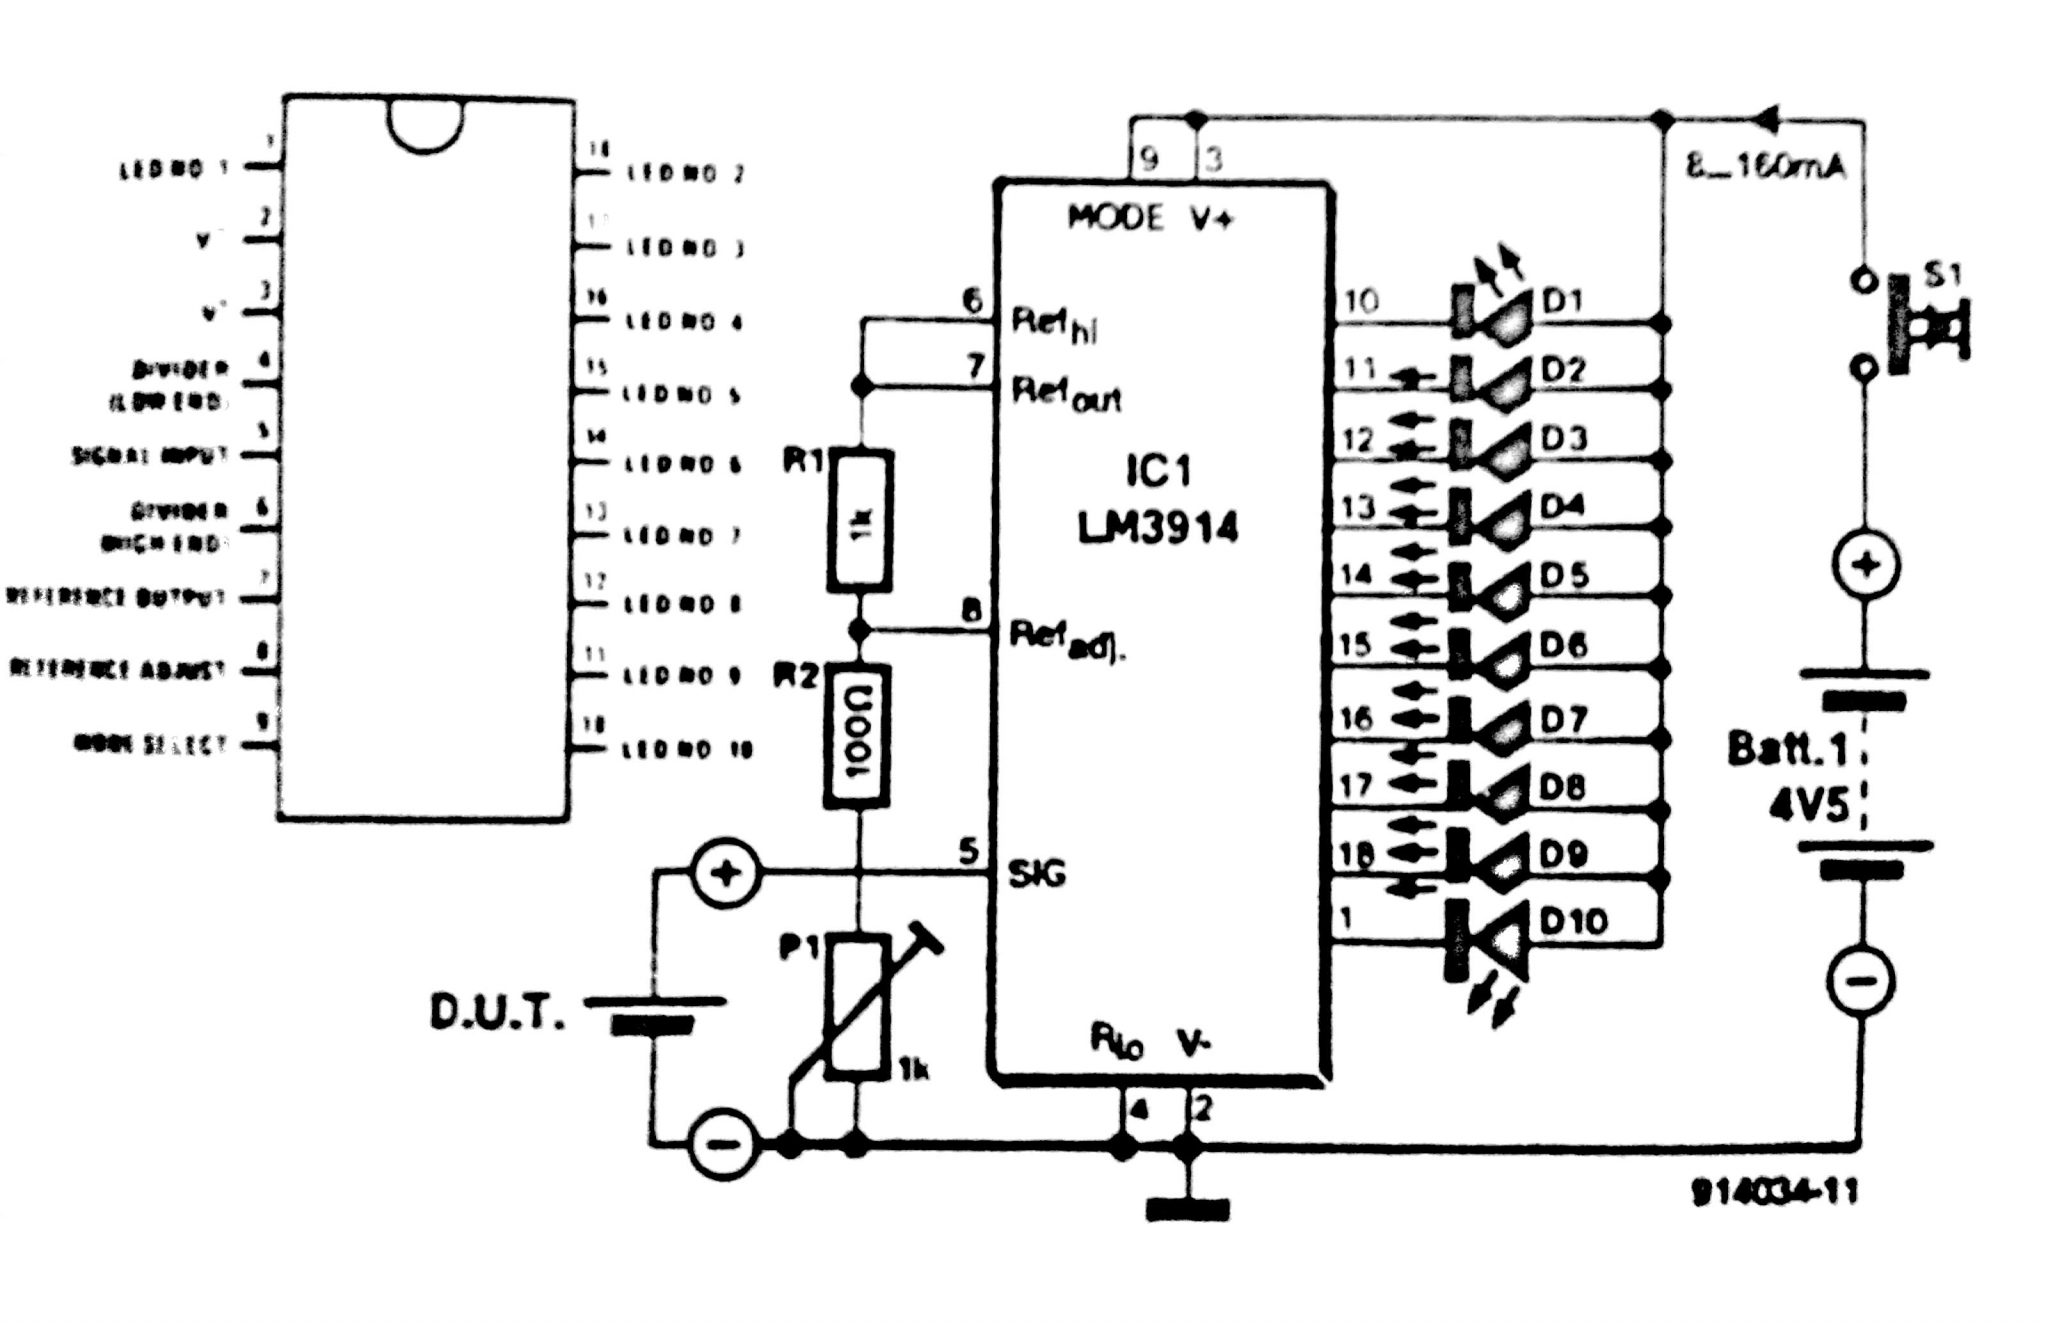 battery tester circuit diagram rh circuit diagramz com battery charging circuit diagram battery circuit diagram explained